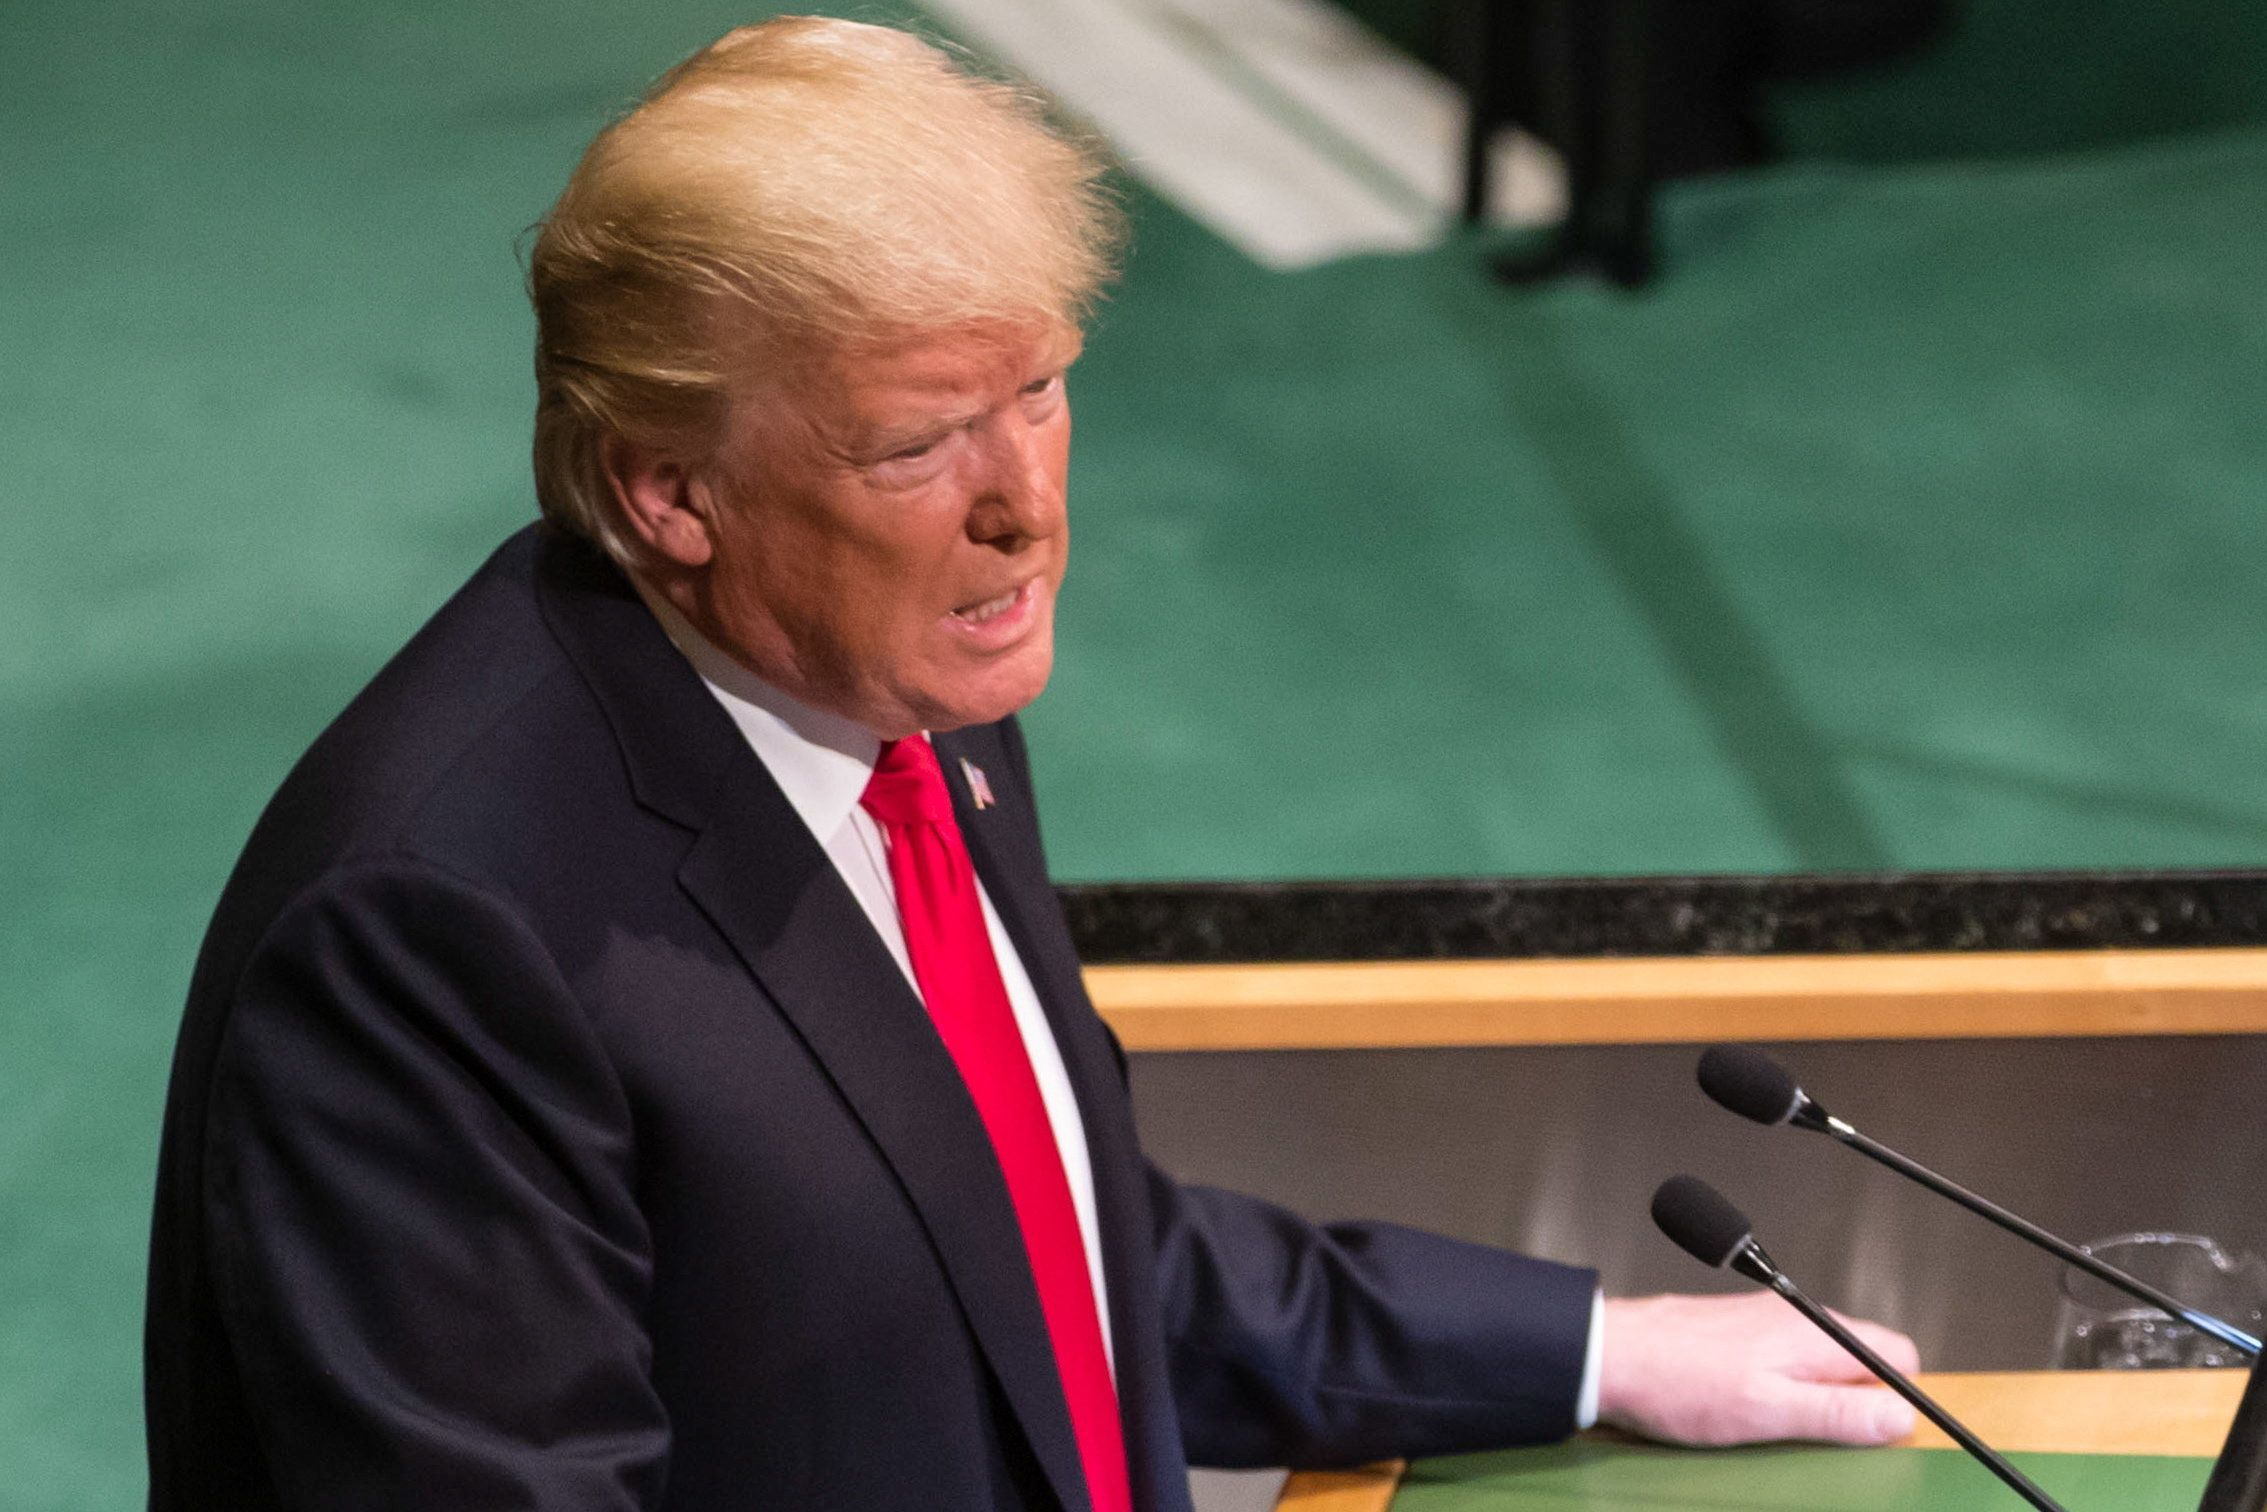 NEW YORK CITY, UNITED STATES  SEPTEMBER 25, 2018: US President Donald Trump makes remarks at the 73rd session of the United Nations General Assembly at the UN headquarters. Mikhail Palinchak/Press Office of the President of Ukraine/TASS (Photo by Mikhail Palinchak\TASS via Getty Images)